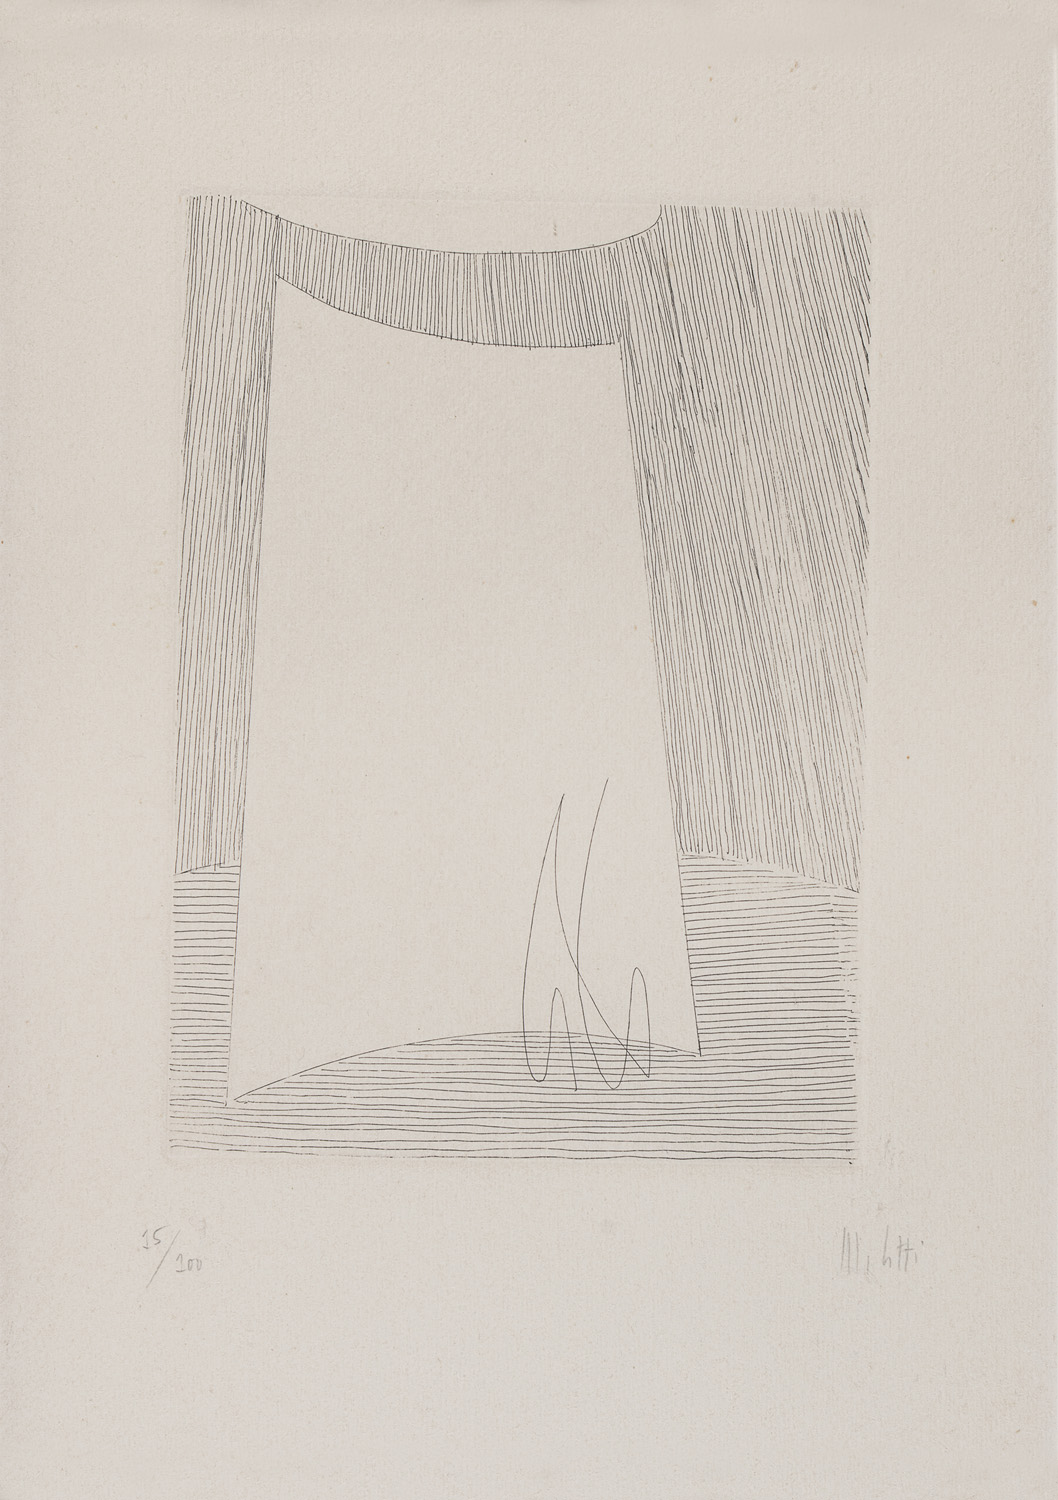 TWO ENGRAVINGS BY FAUSTO MELOTTI 1977 - Image 2 of 2